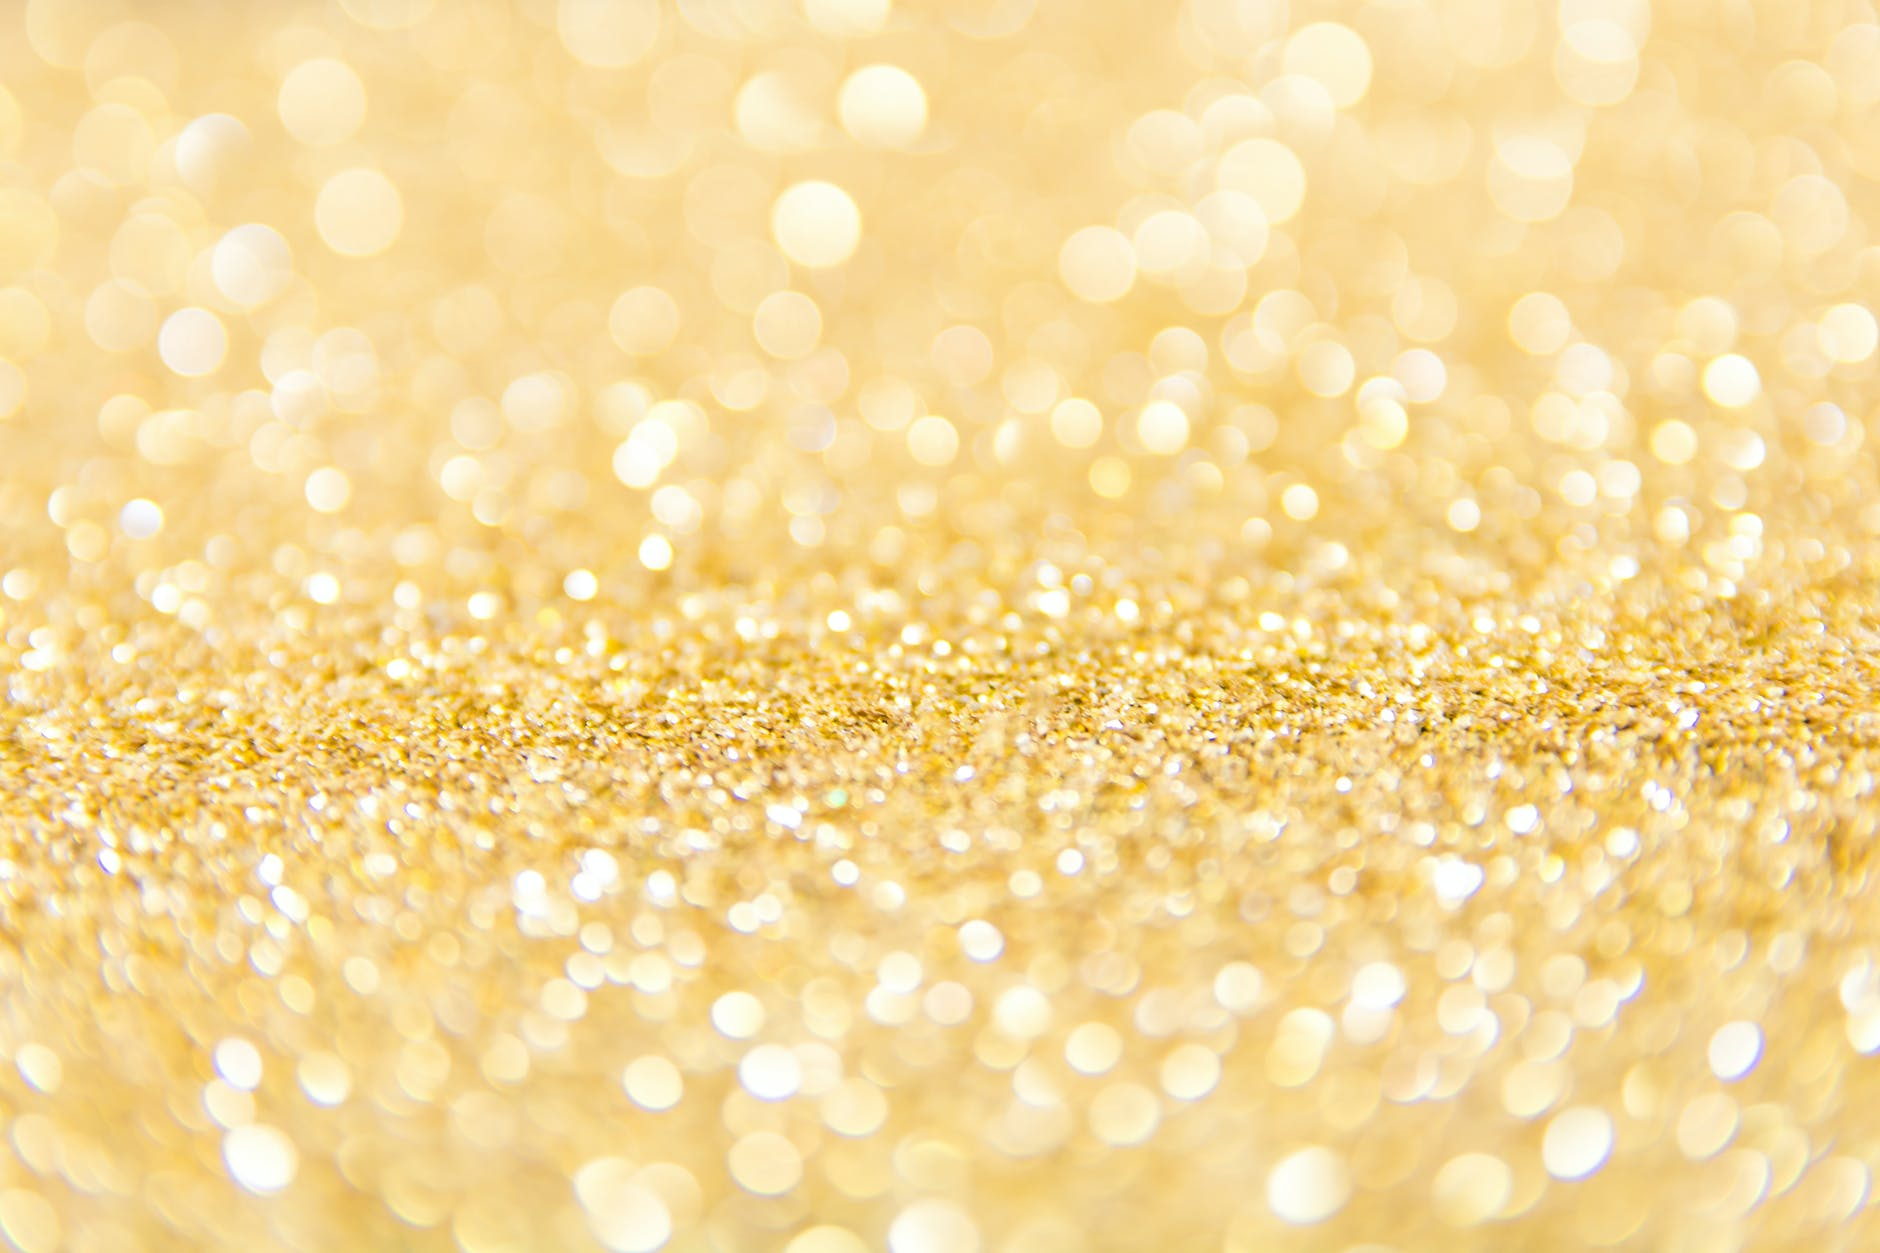 A gold sparkly glitter spread over a surface.